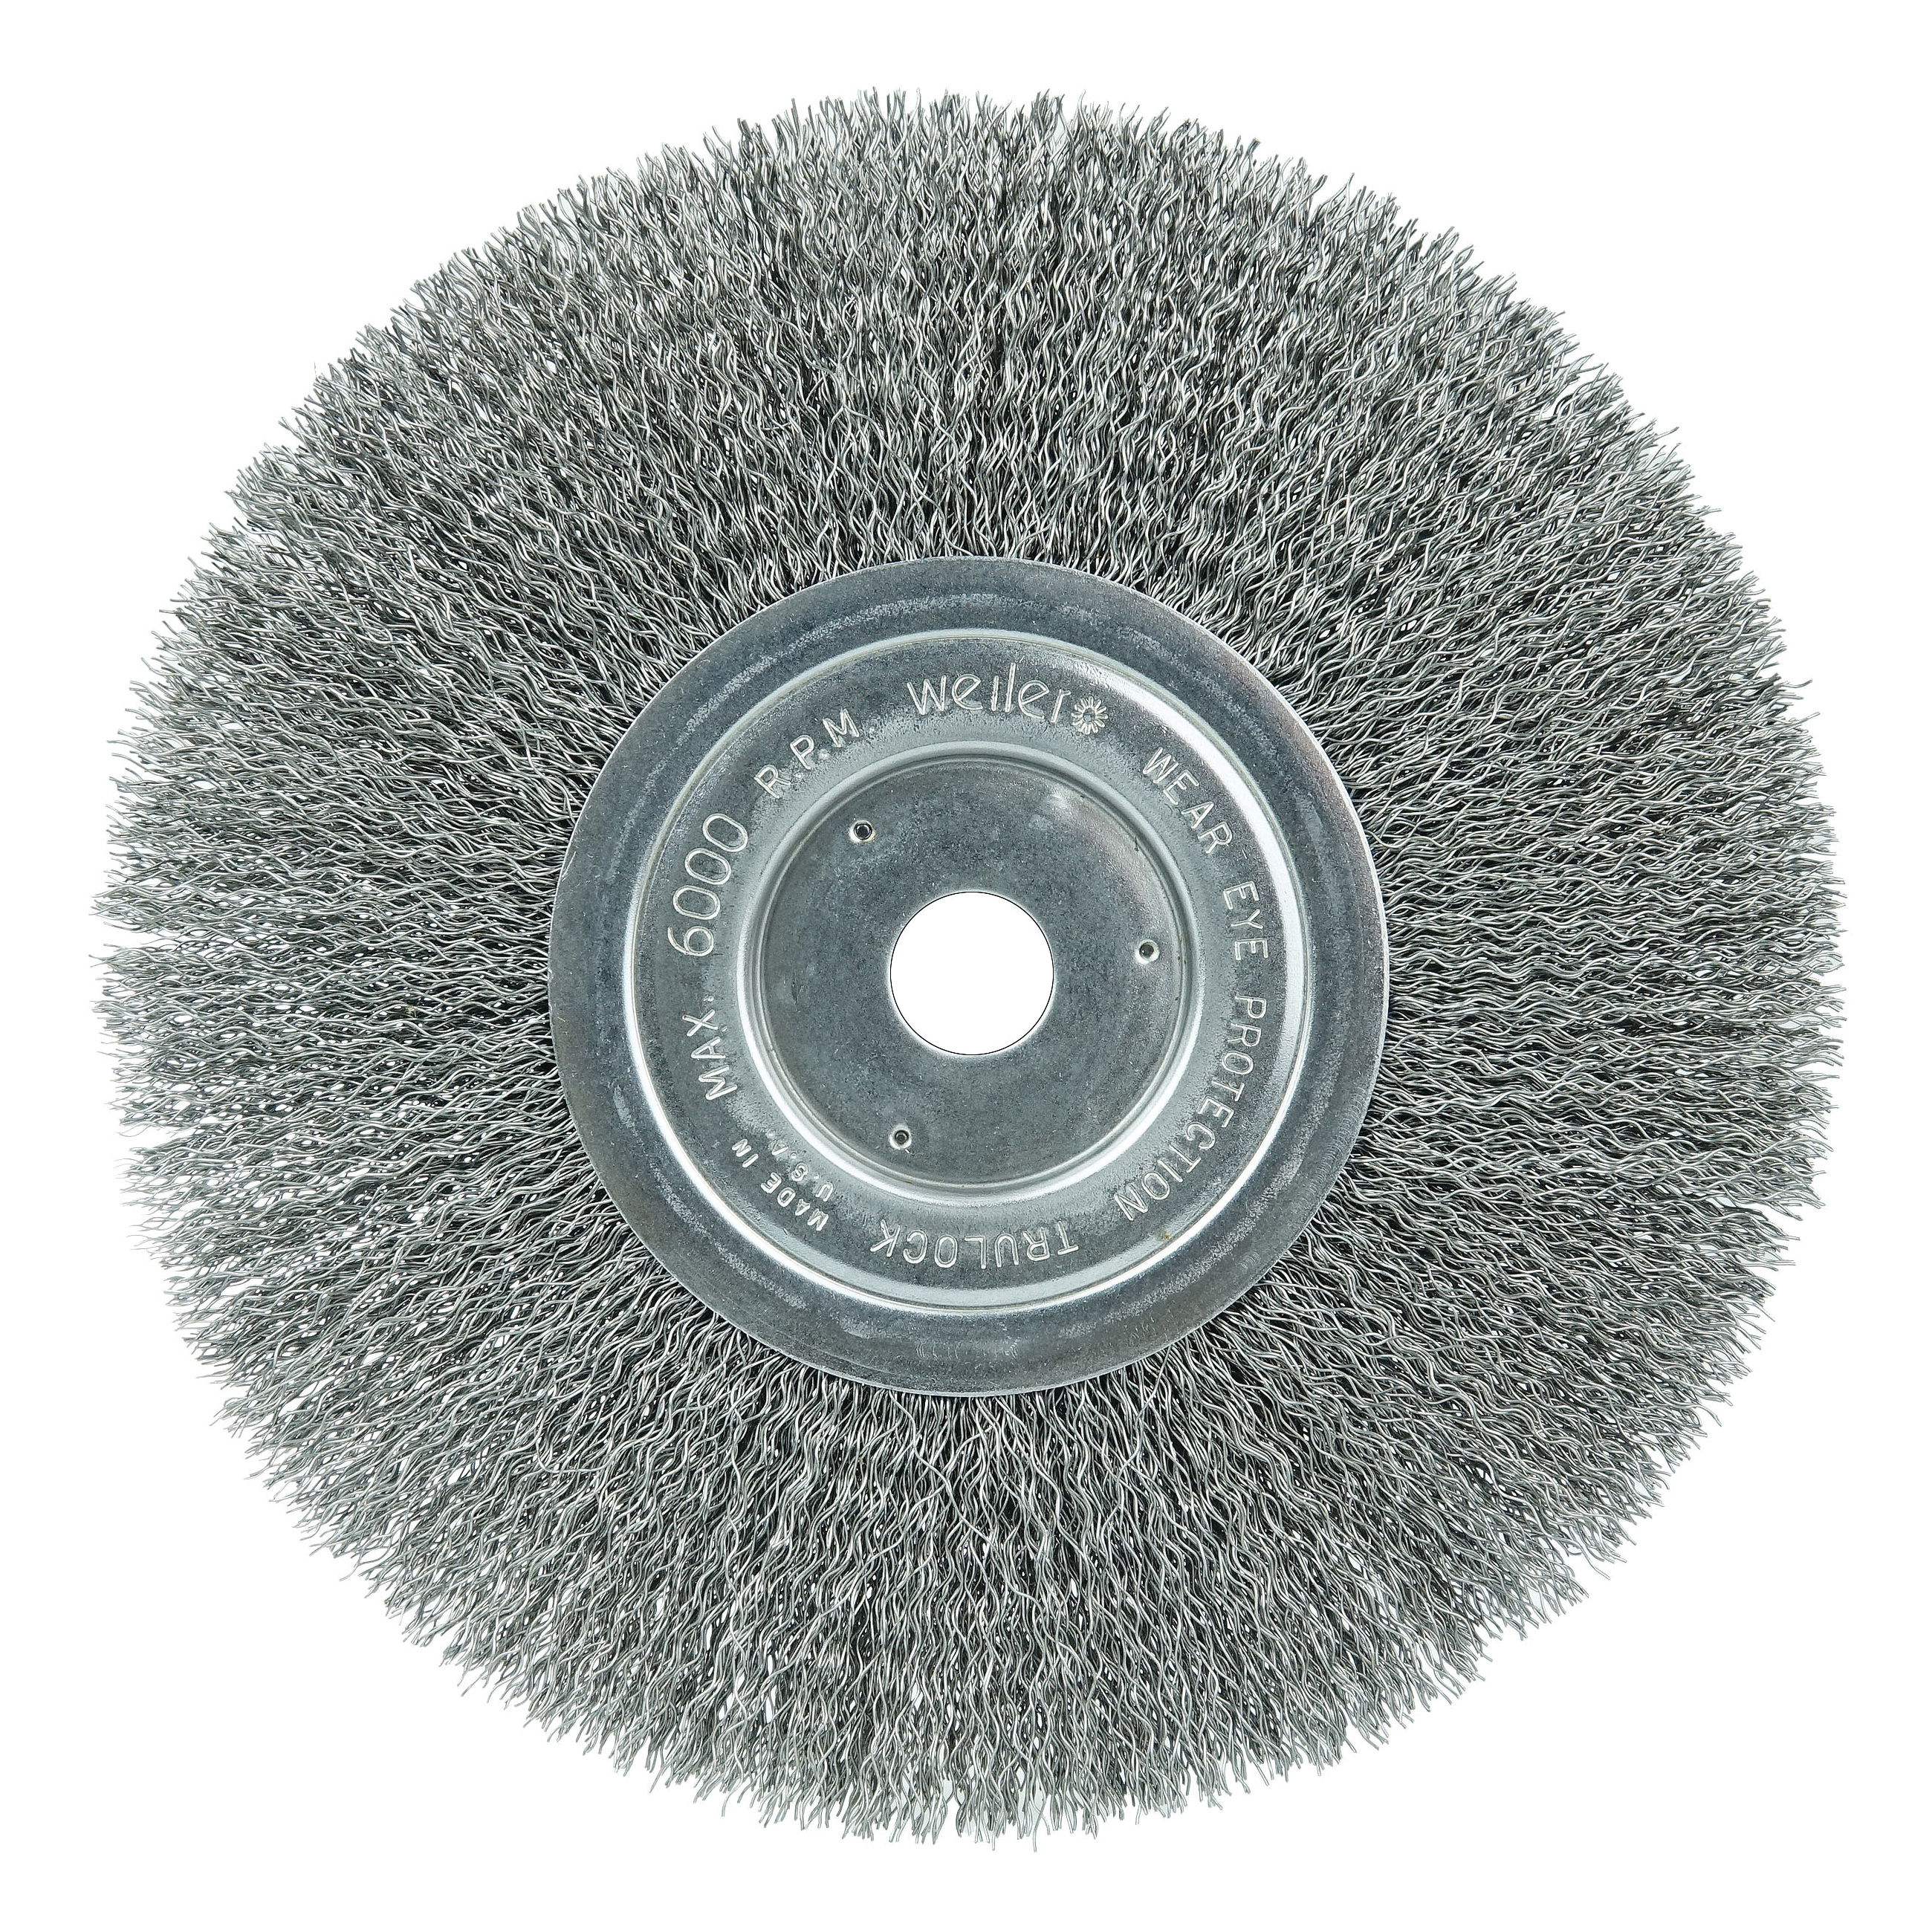 Weiler® 01175 Narrow Face Wheel Brush, 8 in Dia Brush, 3/4 in W Face, 0.014 in Dia Crimped Filament/Wire, 5/8 in Arbor Hole